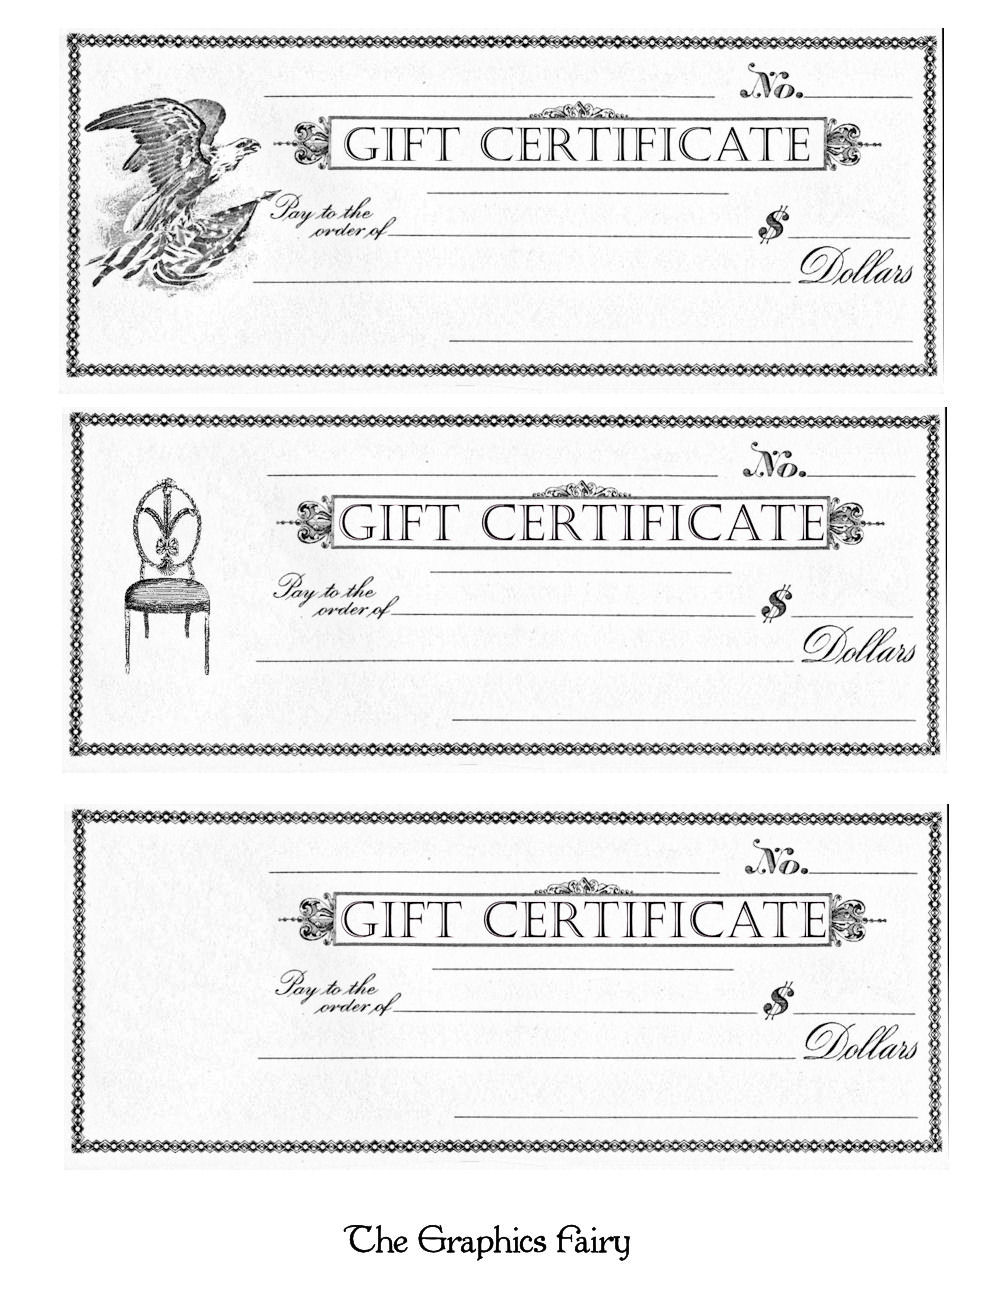 Free printable gift certificates the graphics fairy xxxooo xflitez Images